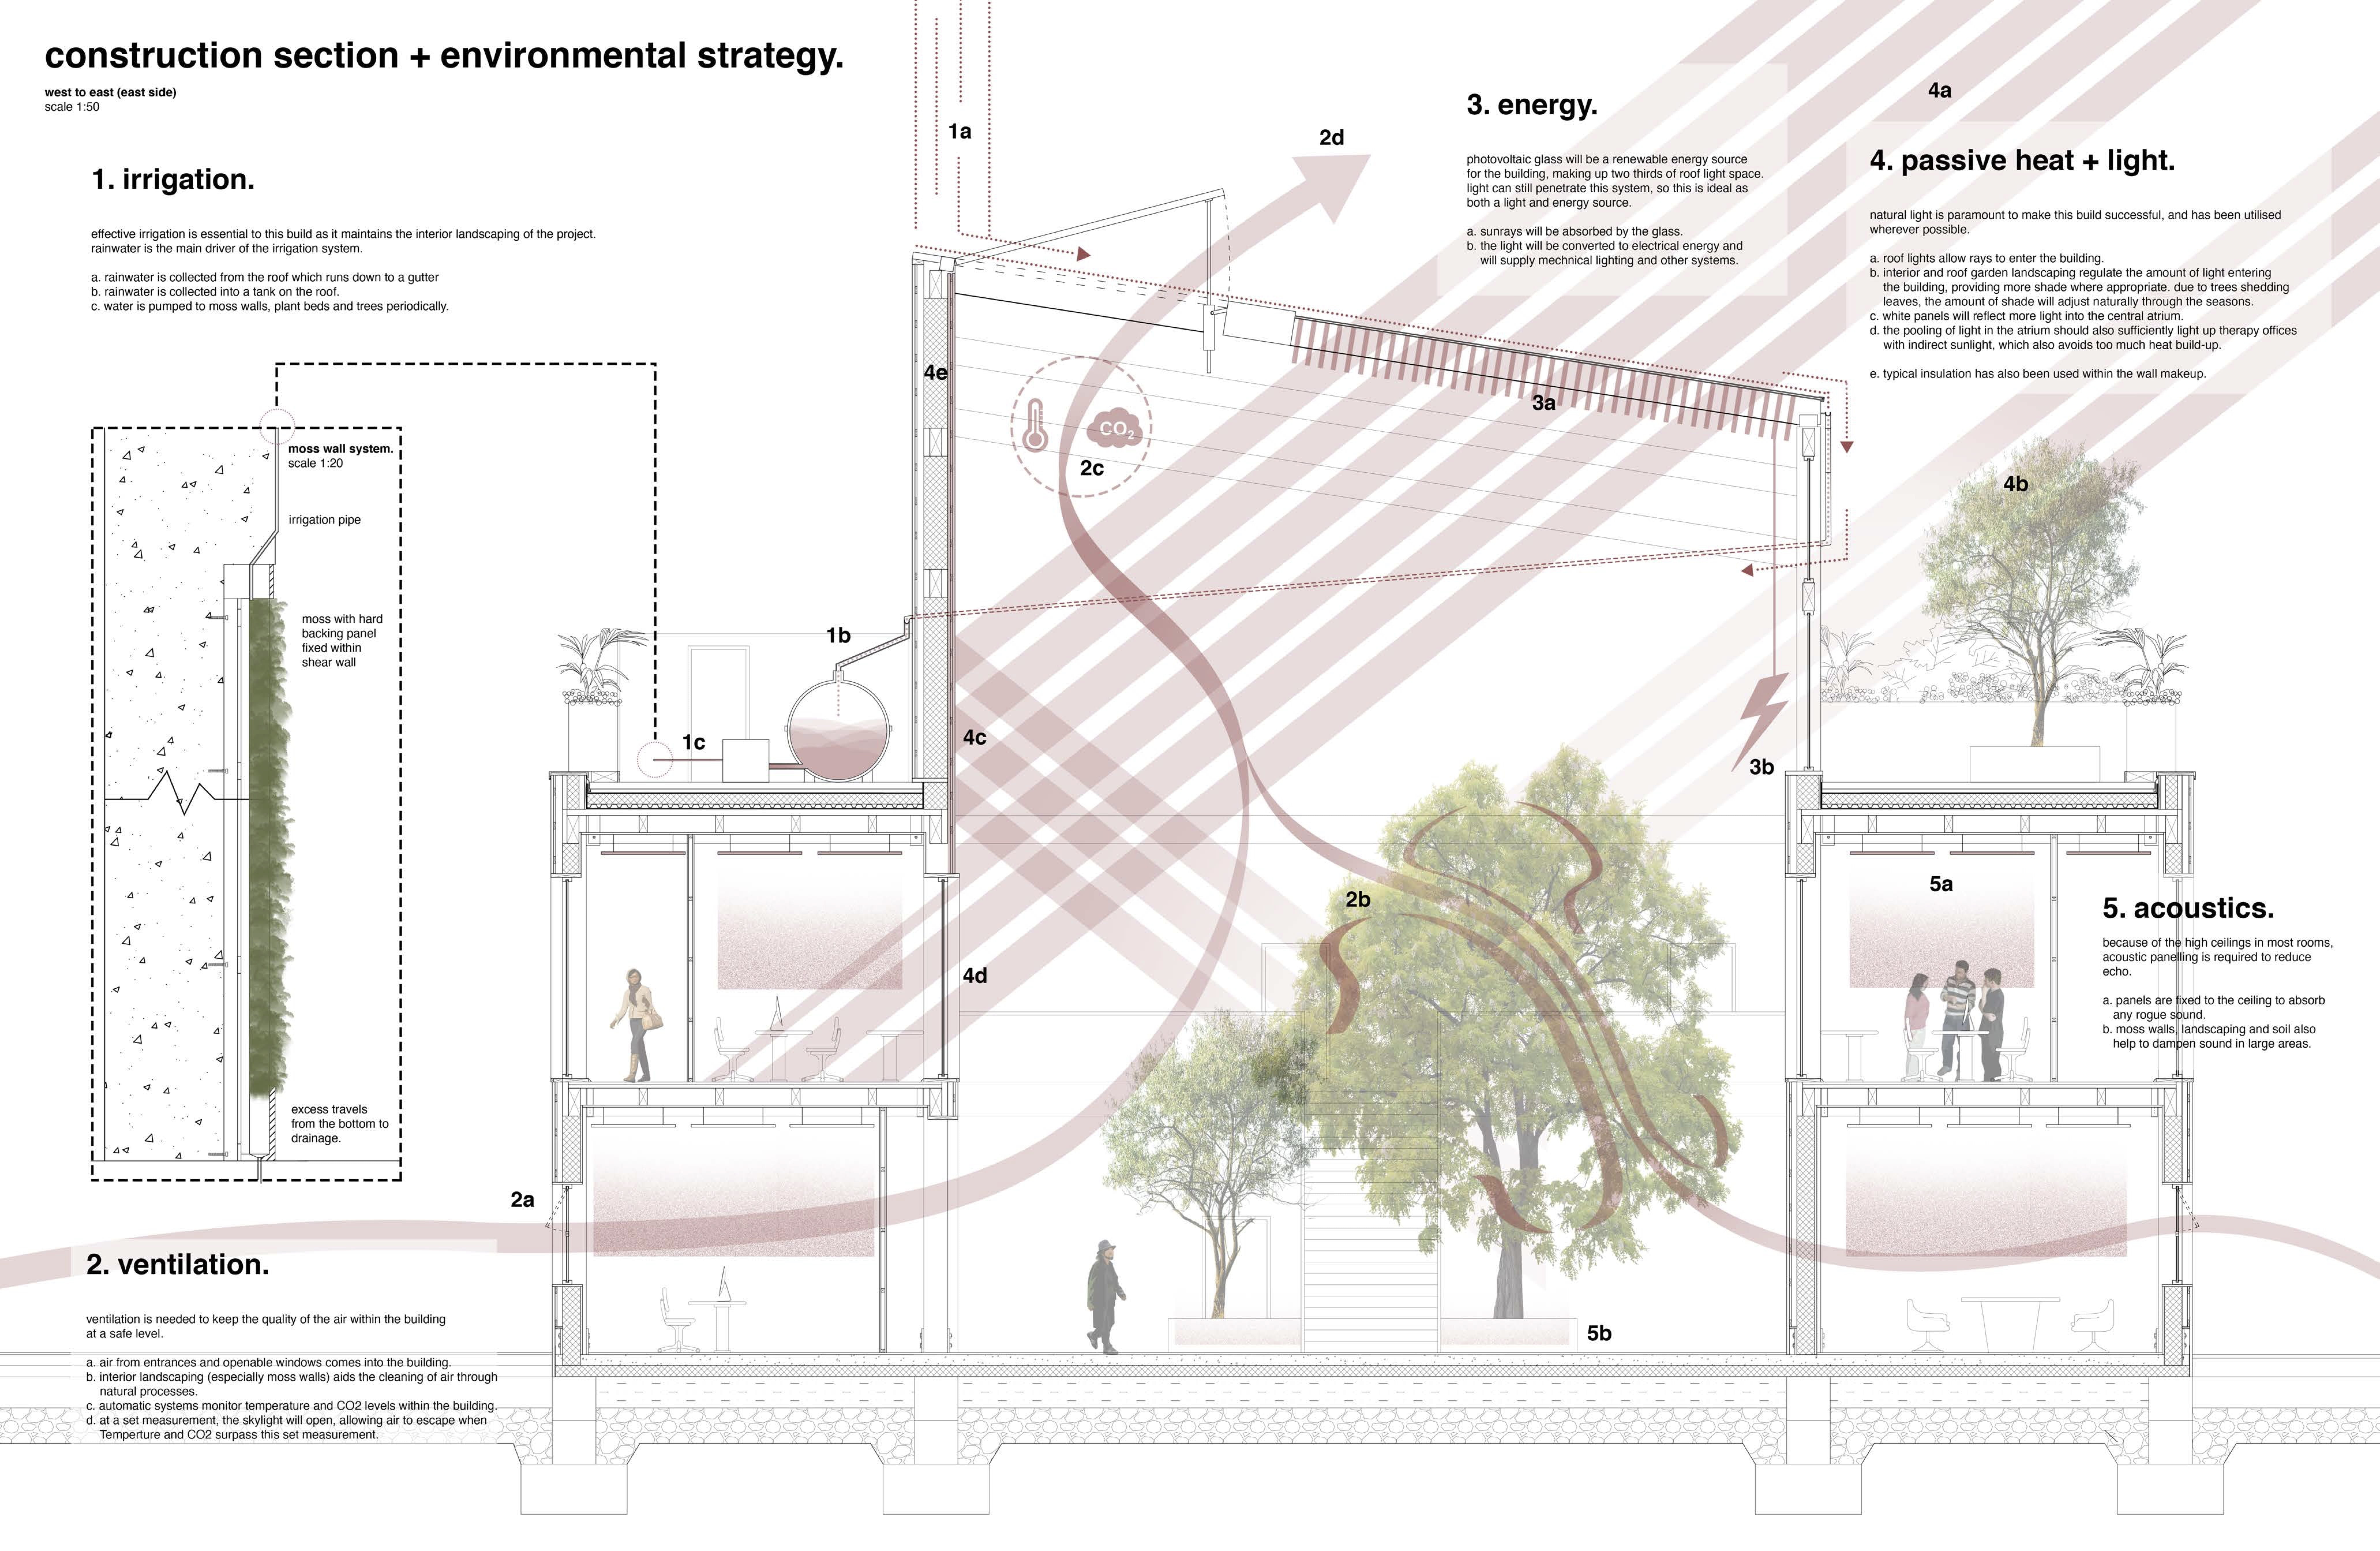 The Strategy - Utilising the surrounding environment is essential to creating a building that sits well within its context- this can be achieved by harnessing, light, rainfall, wind, etc.